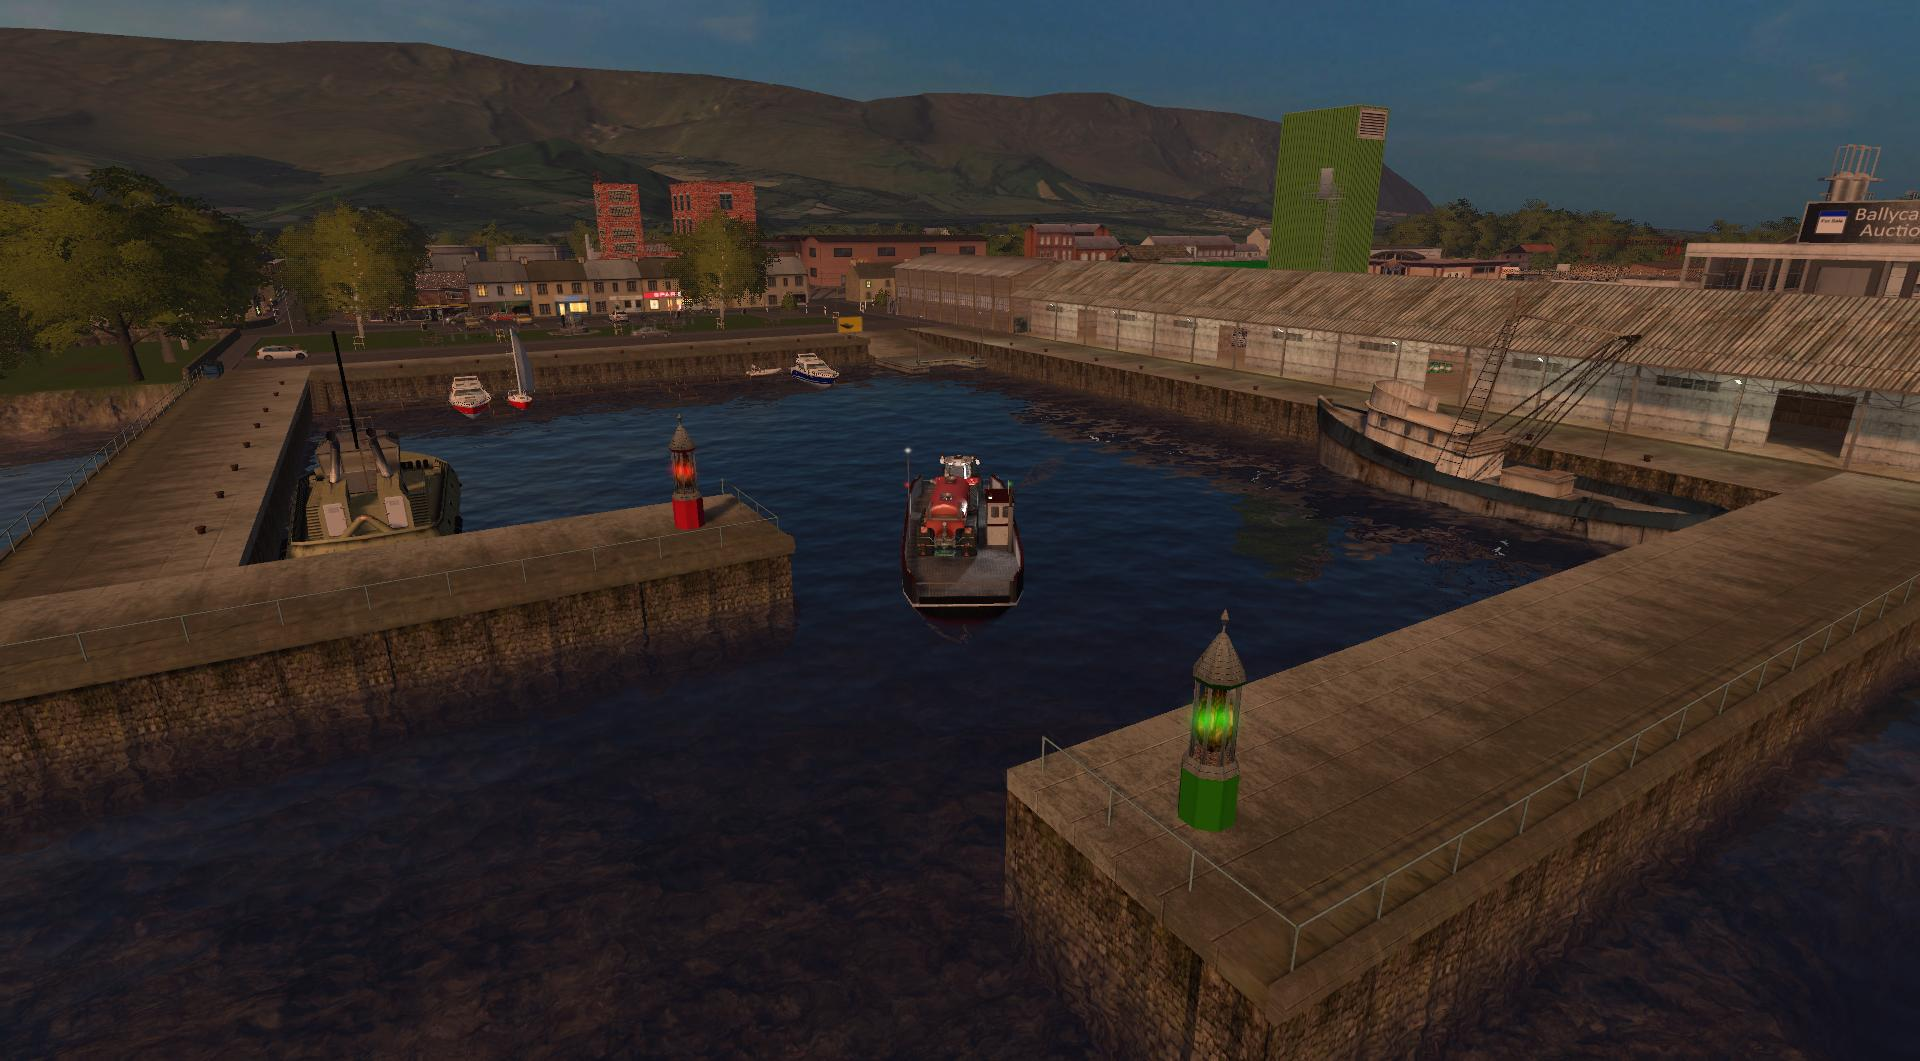 Rathlin Island v1.0